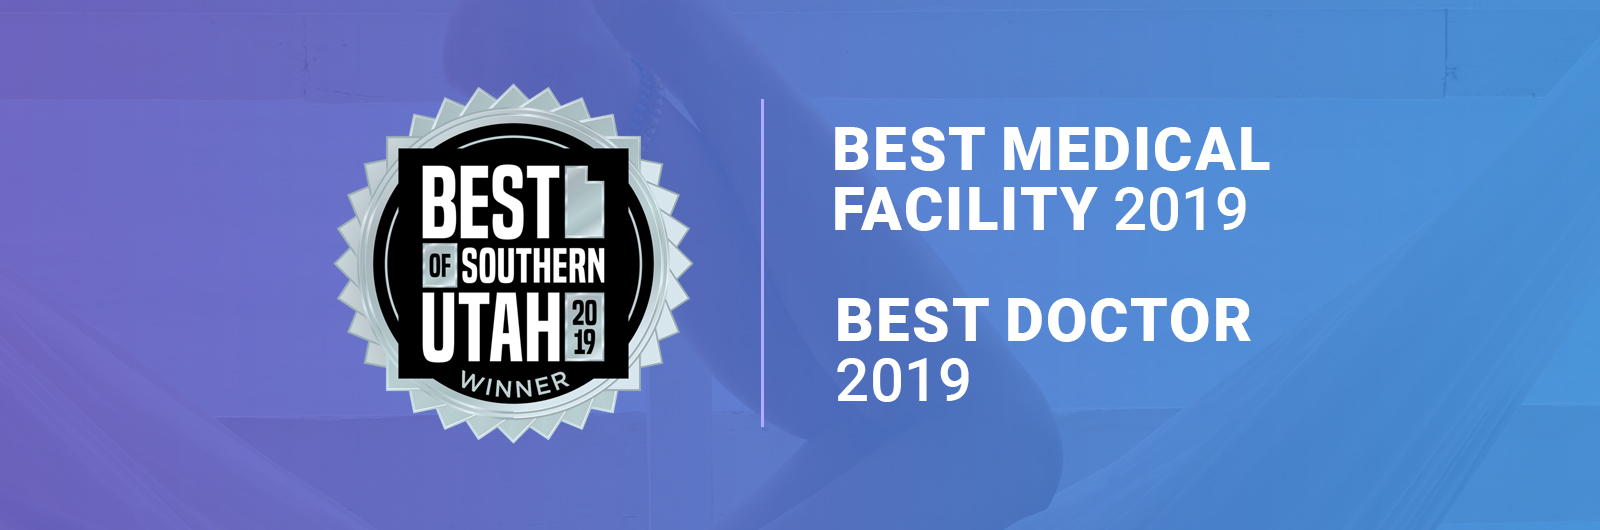 Banner showing Best of Southern Utah awards our vein center was awarded including Best Medical Facility 2019 and Best Doctor 2019